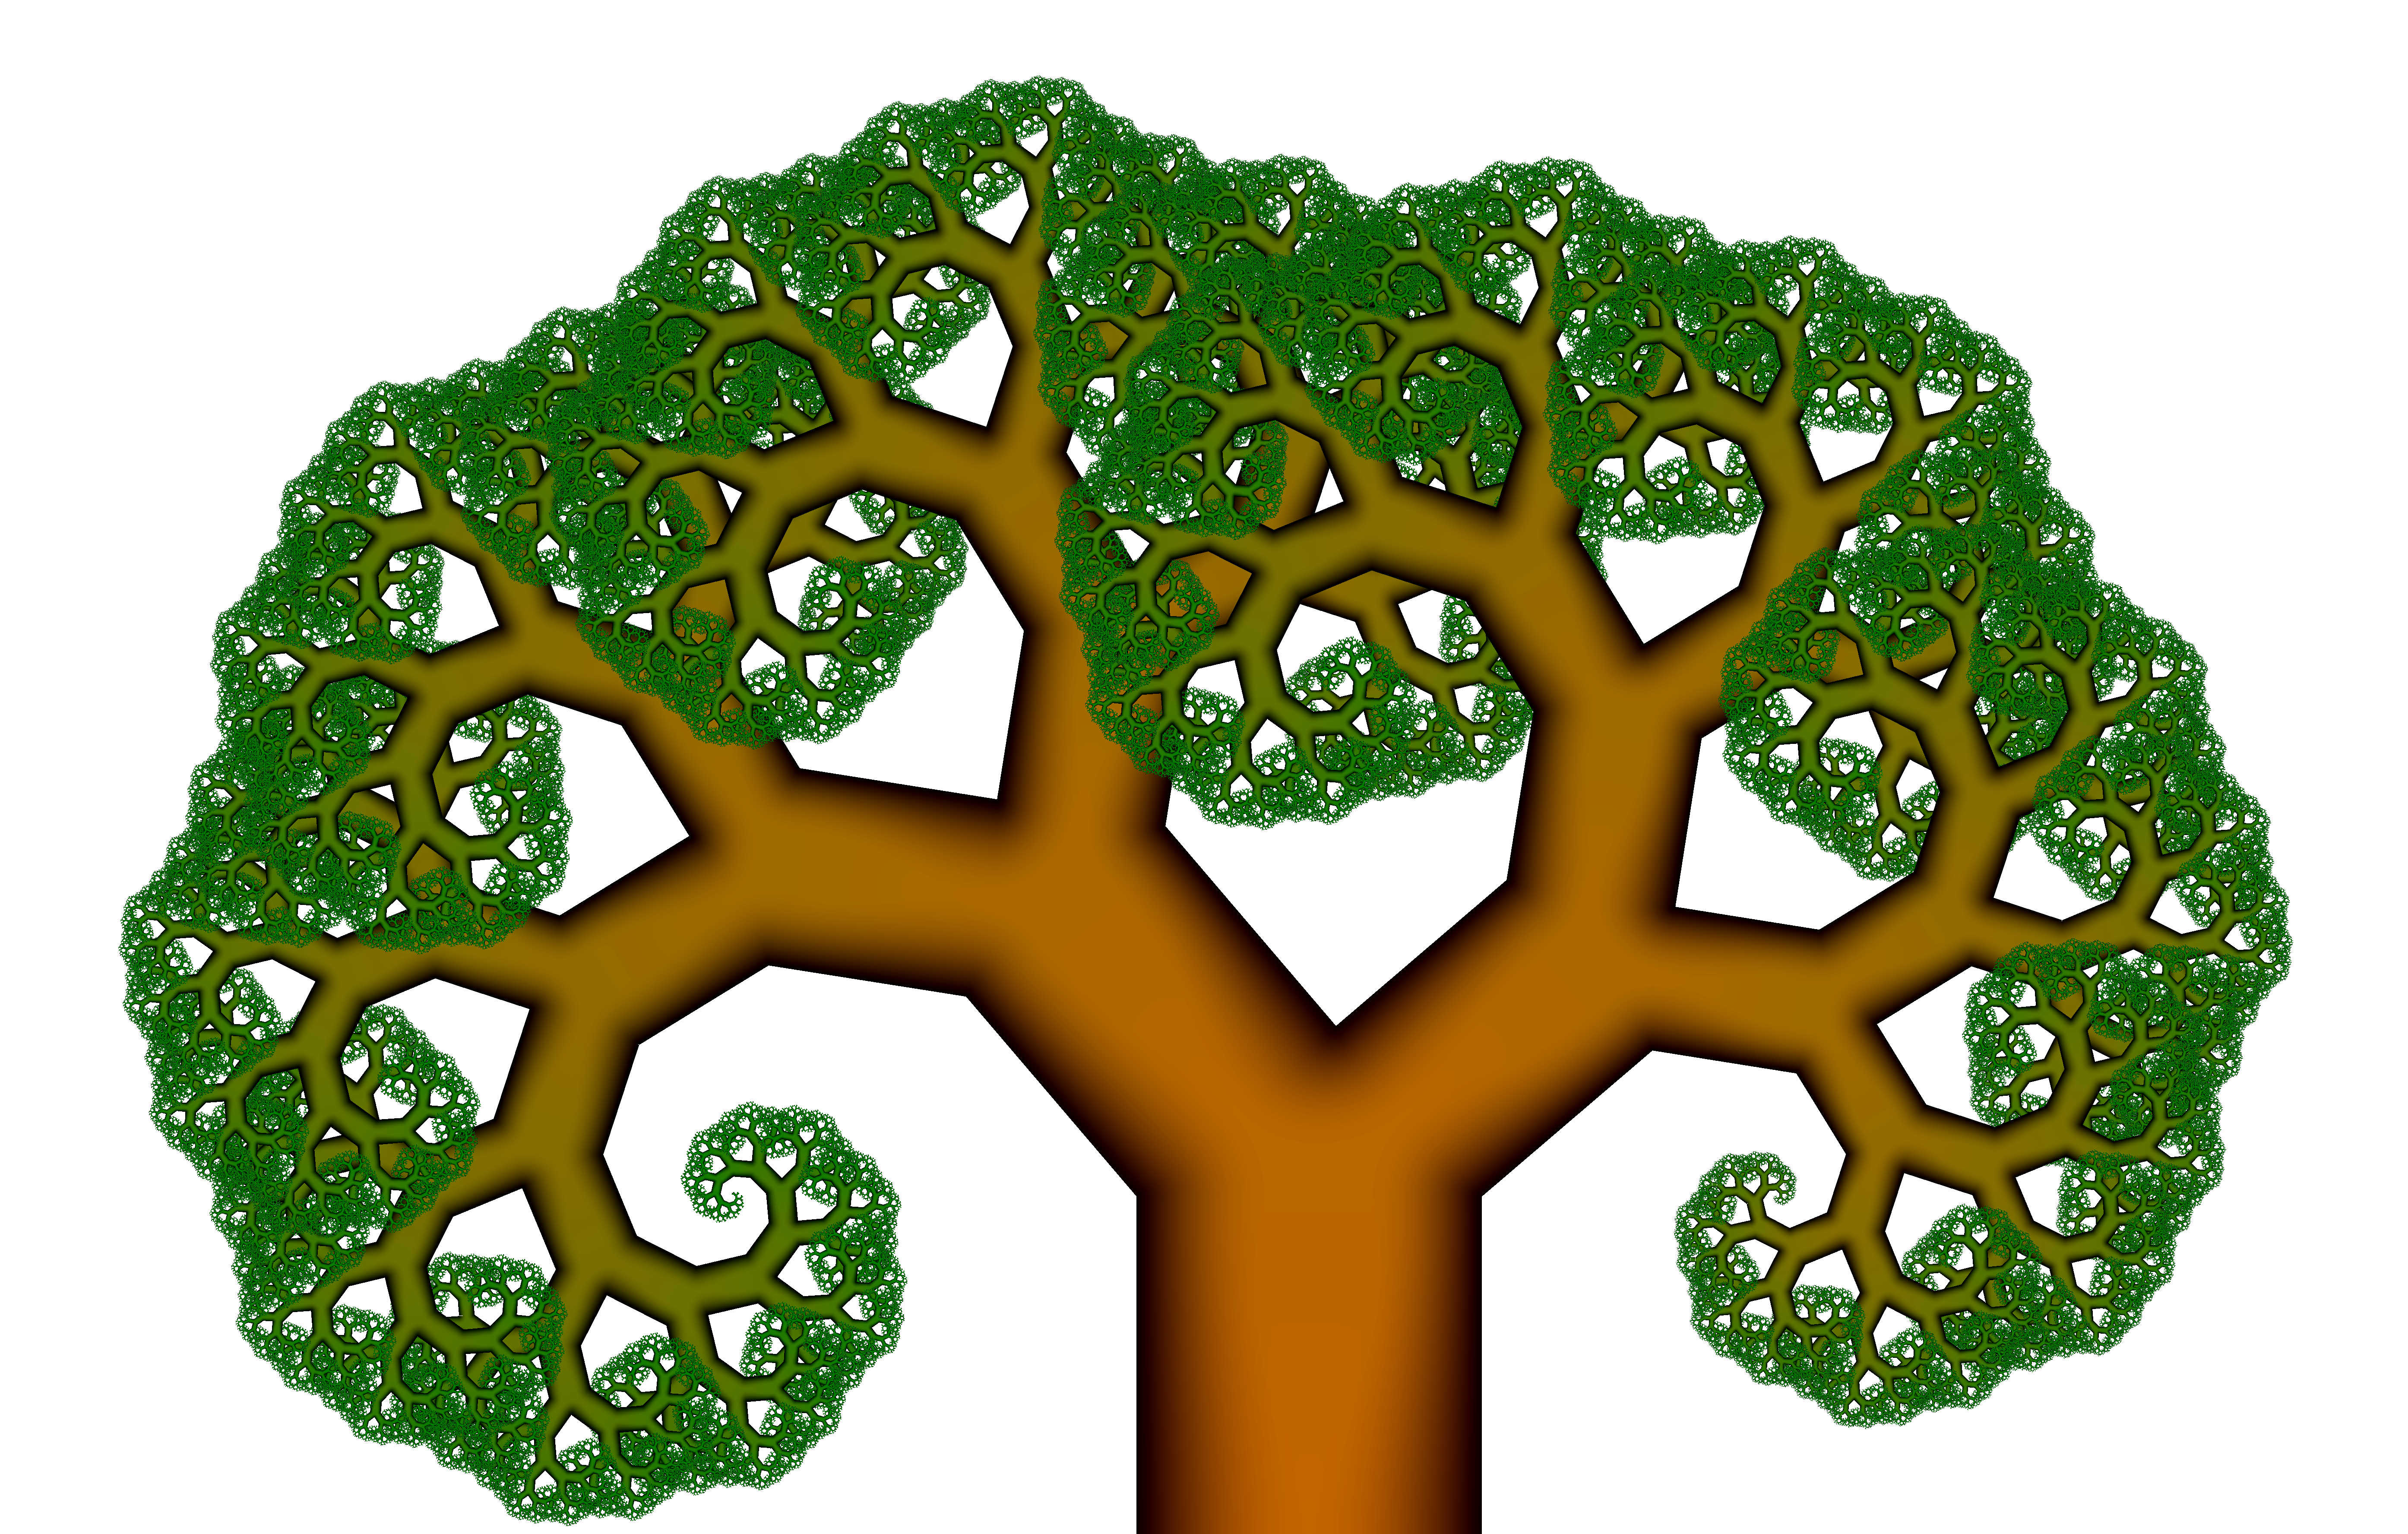 The Pythagoras tree with an angle of 25 degrees and smooth coloring.